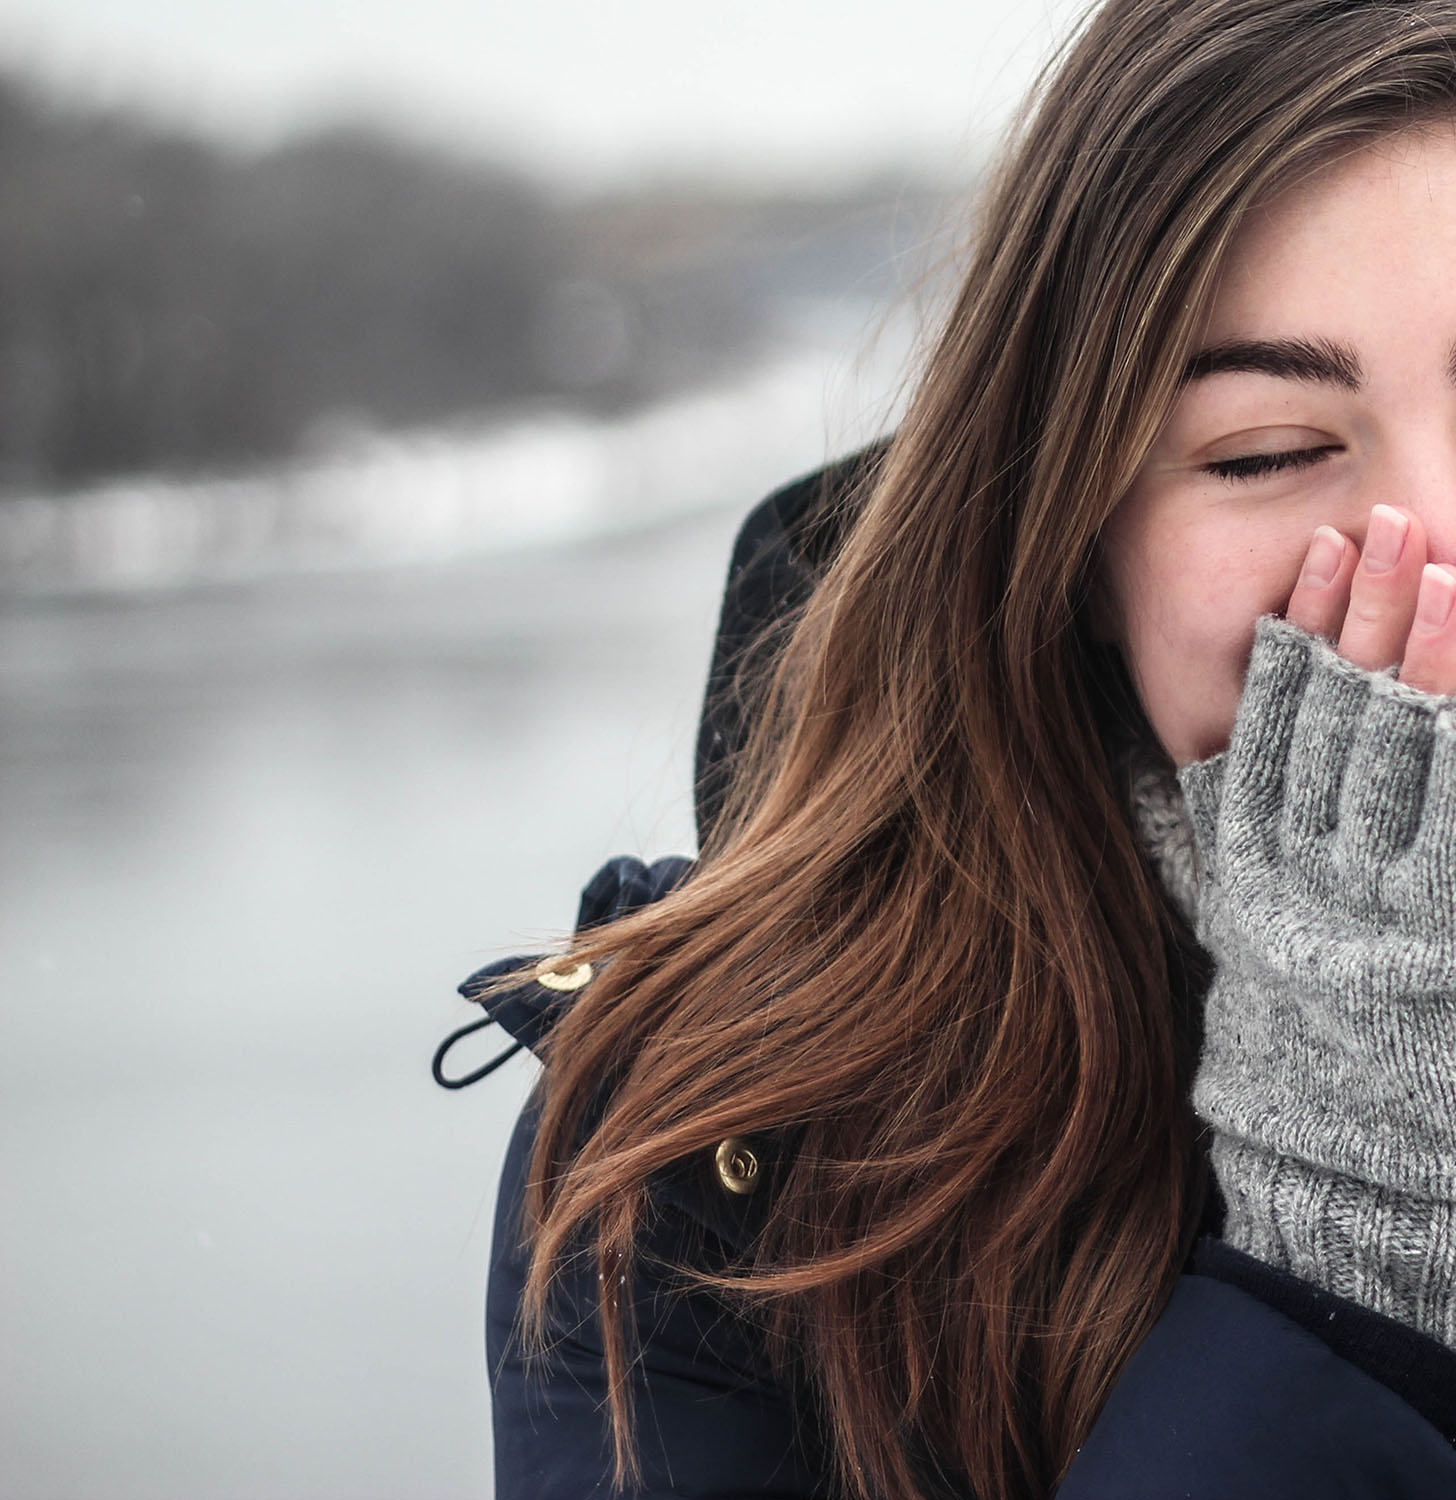 5 Tips to Combat Dry Winter Hair Issues